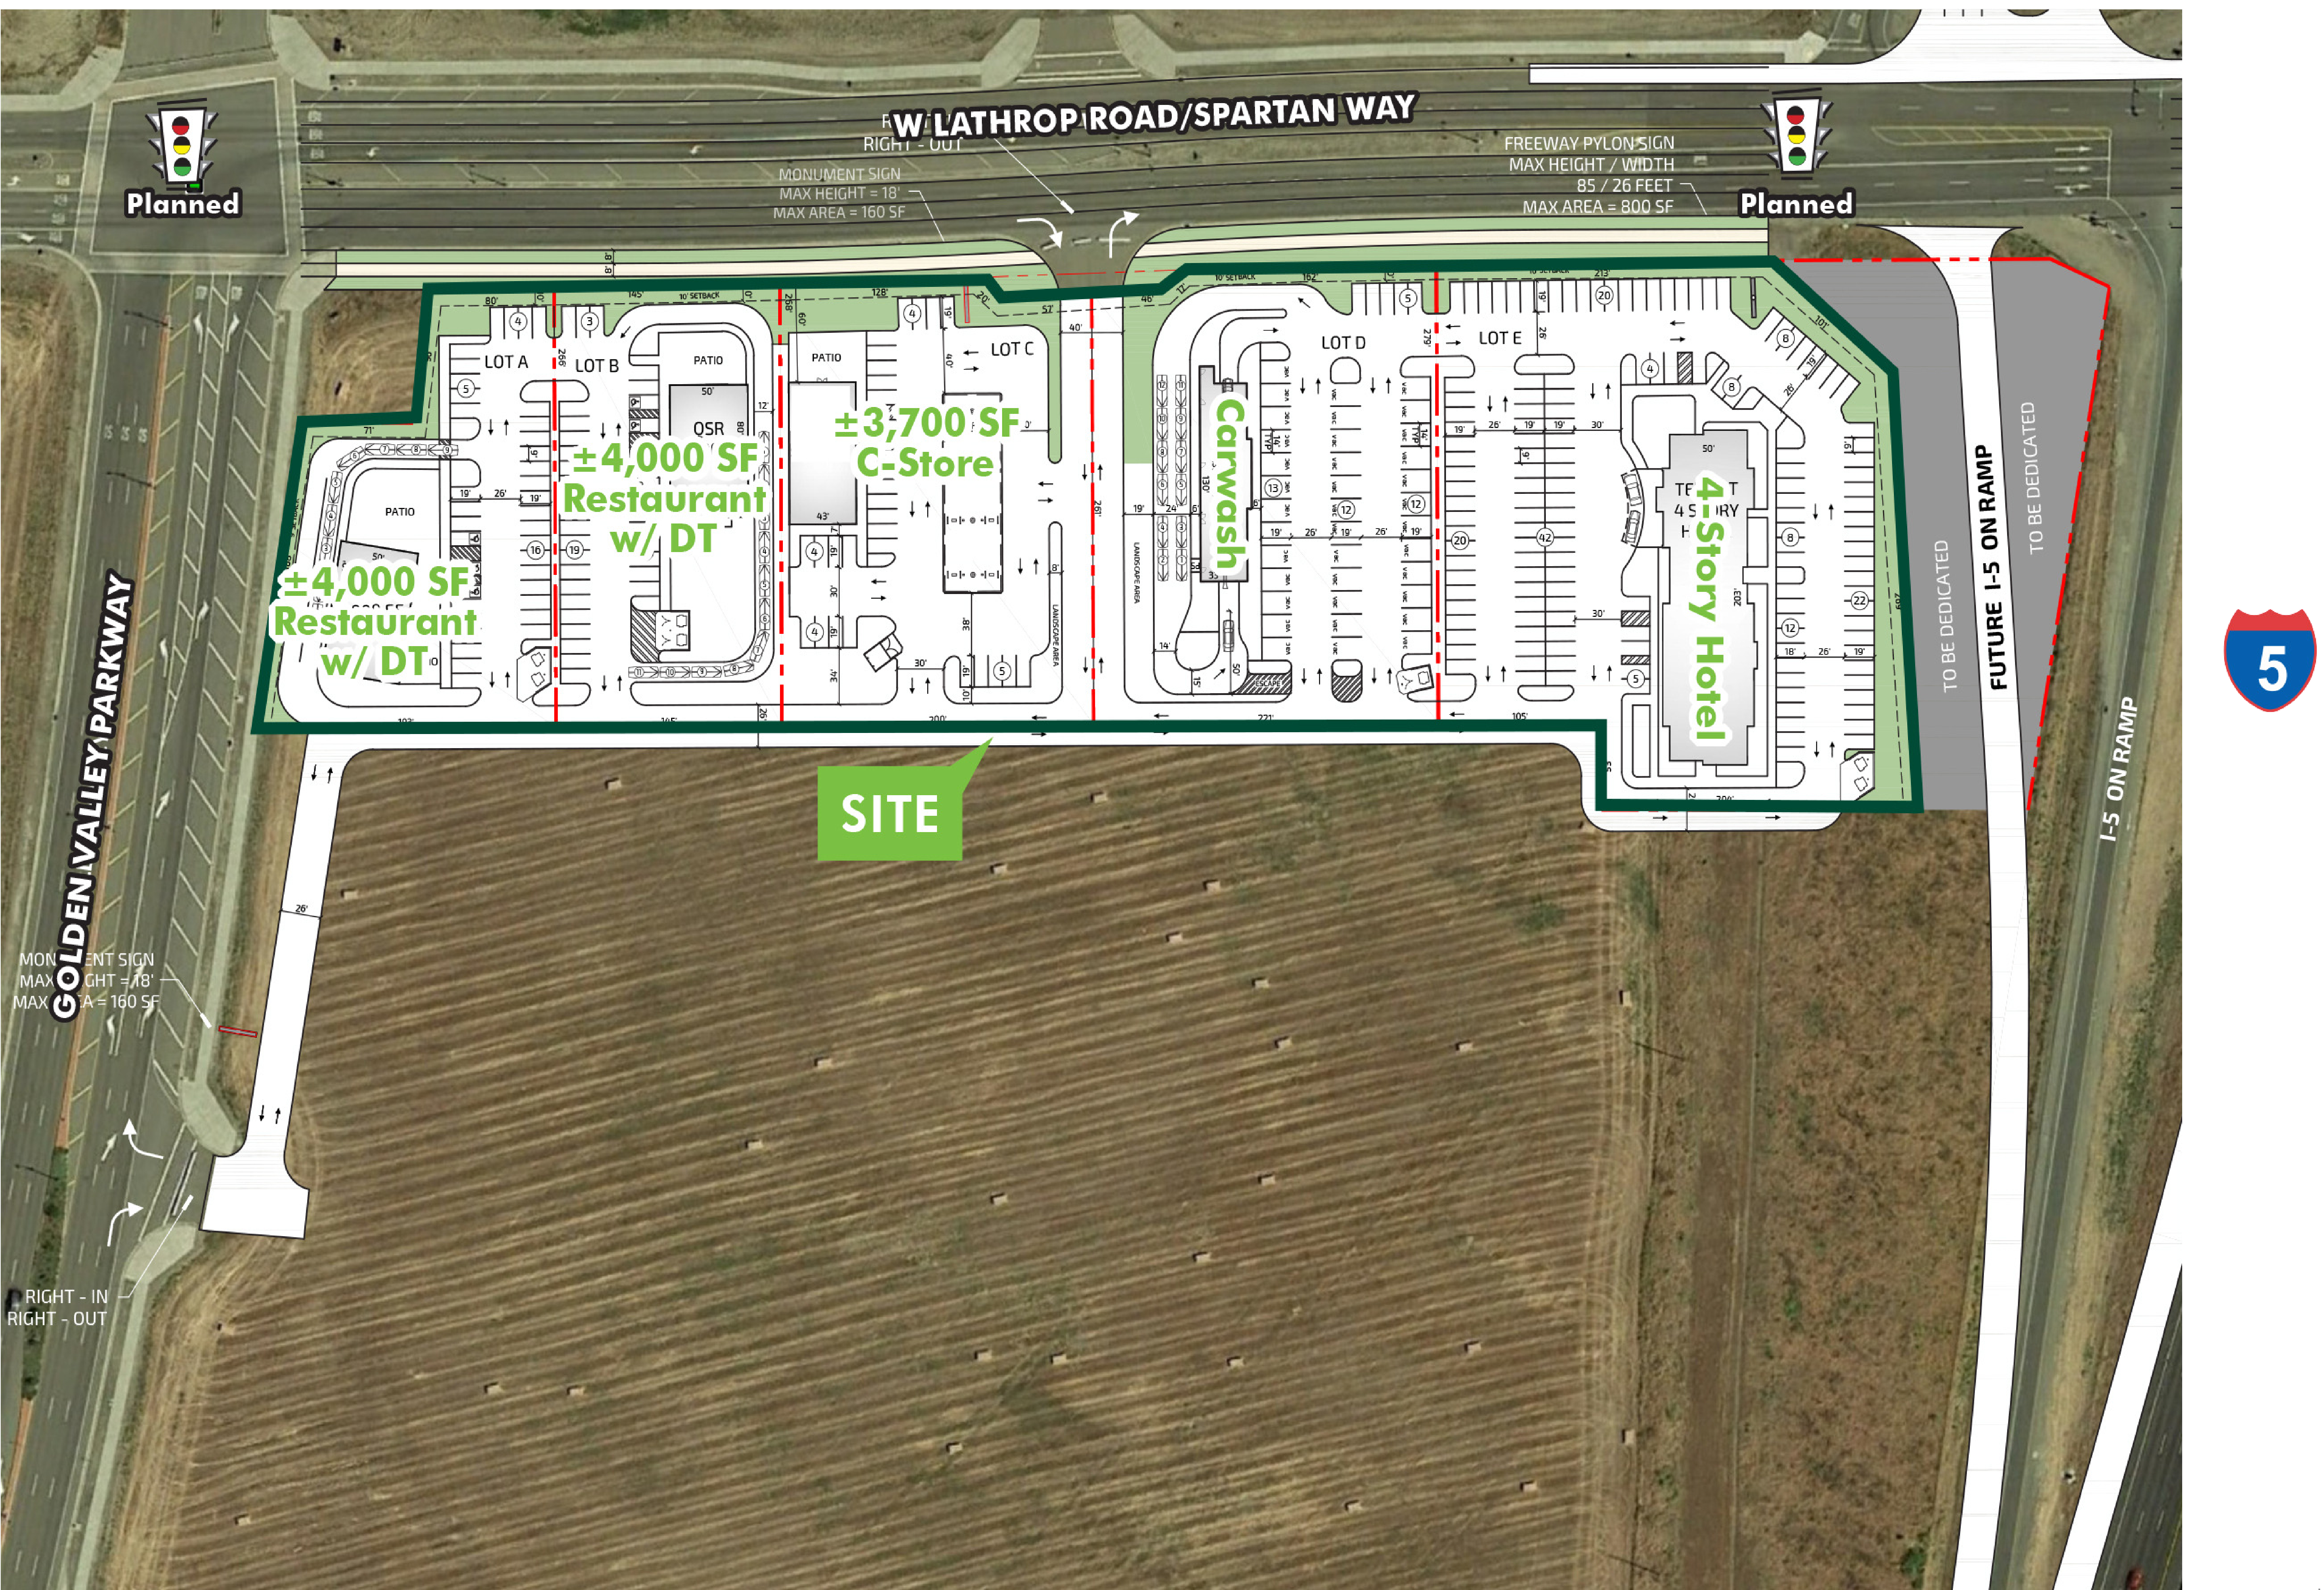 Highway Commercial Pad - I-5 & Lathrop: site plan